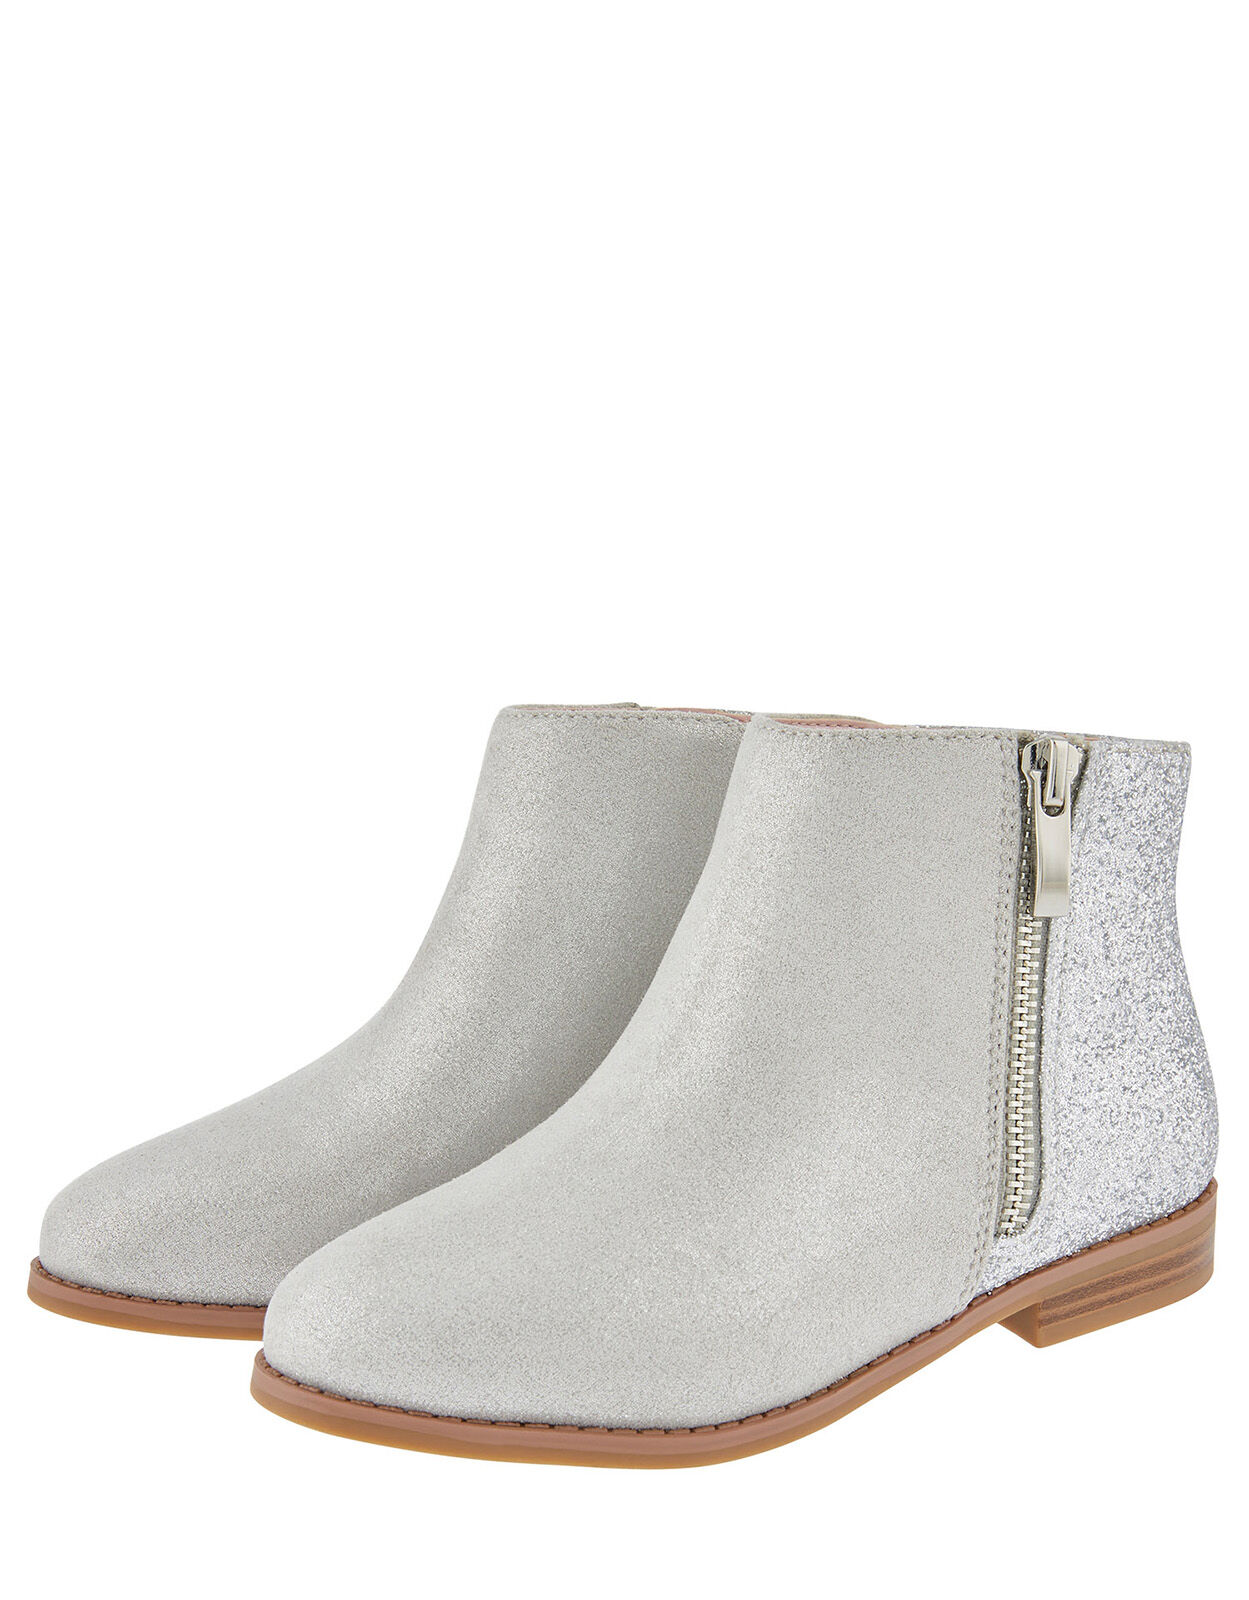 Lainey Glitter Ankle Boots Grey | Girls